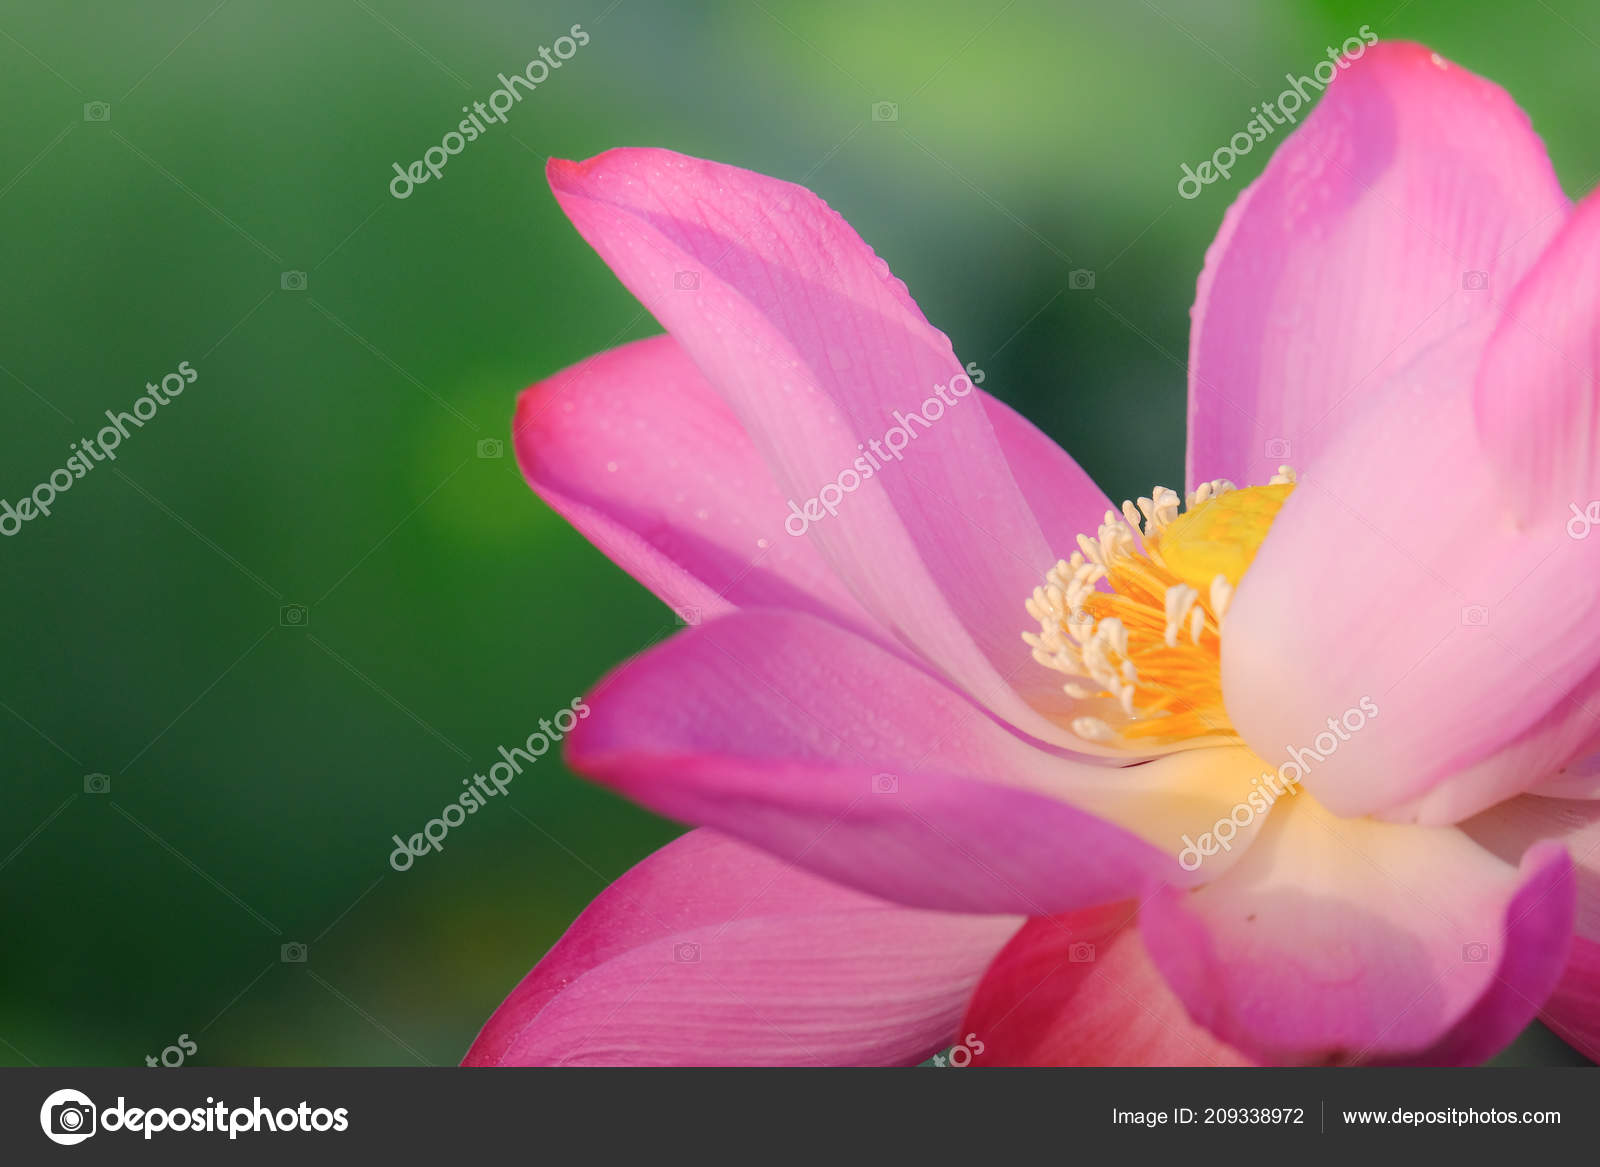 Fresh Pink Lotus Flower Royalty High Quality Free Stock Image